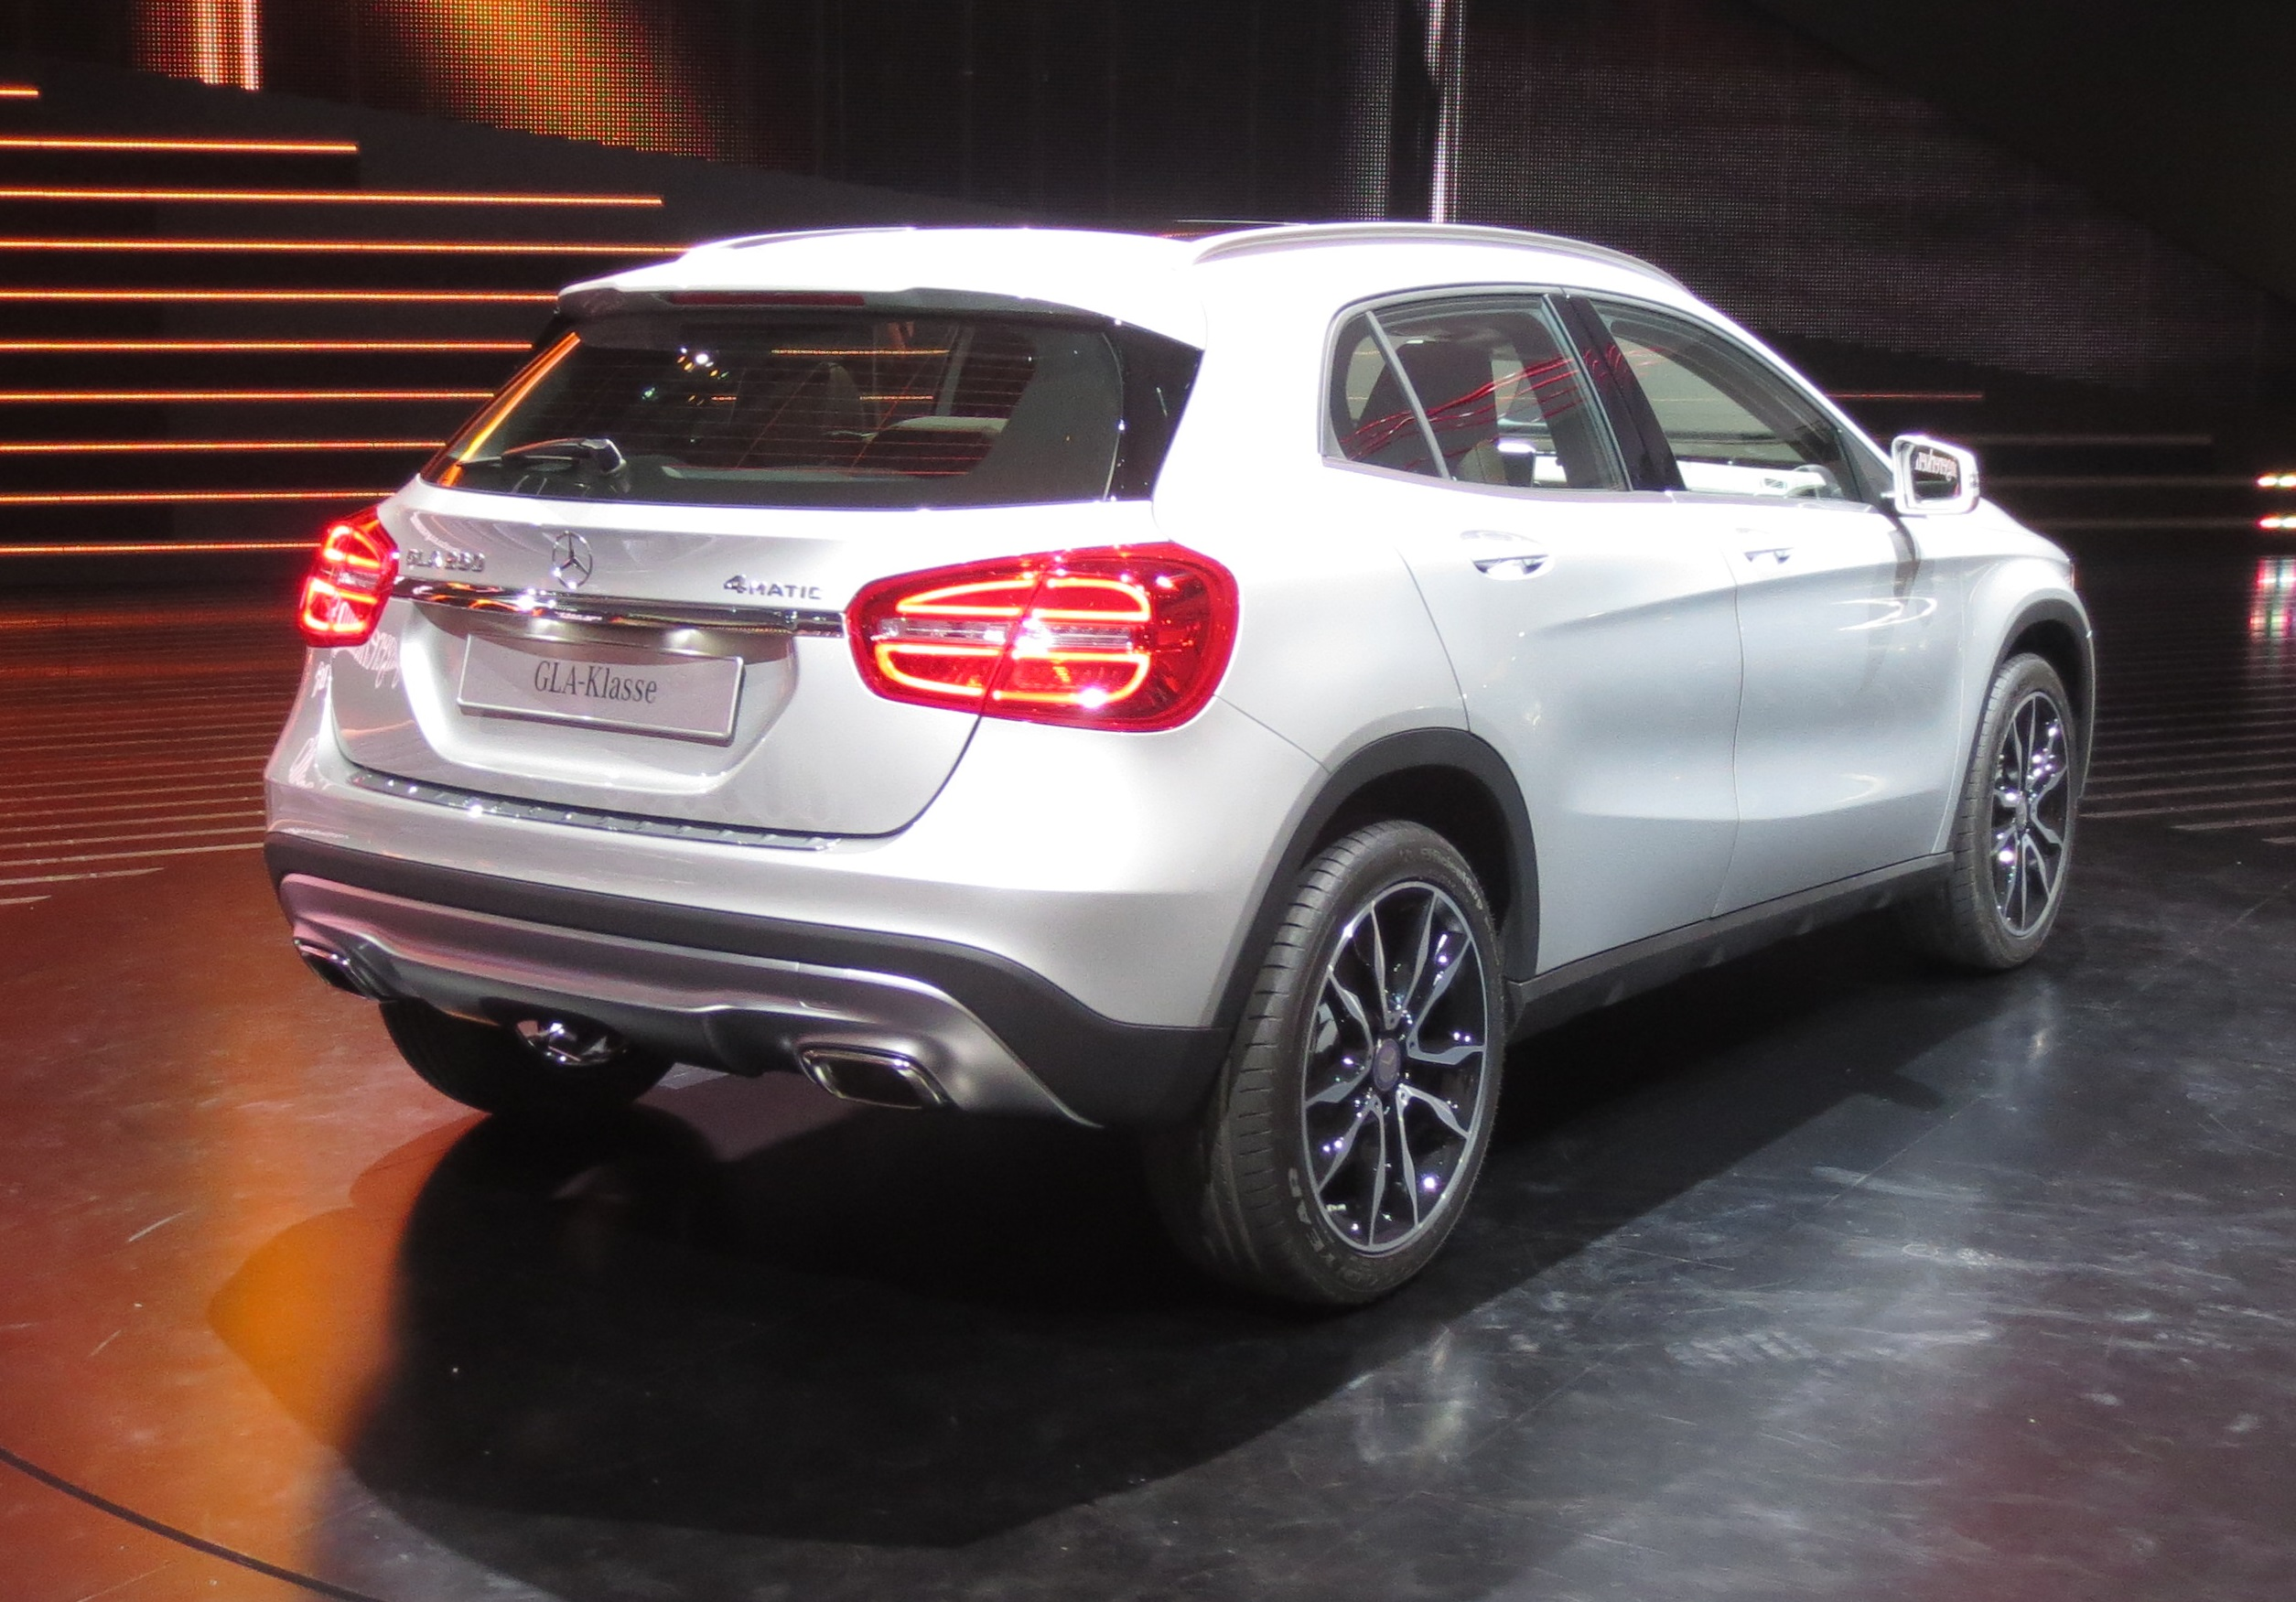 File:Mercedes-Benz-GLA Rear-view.jpg - Wikimedia Commons